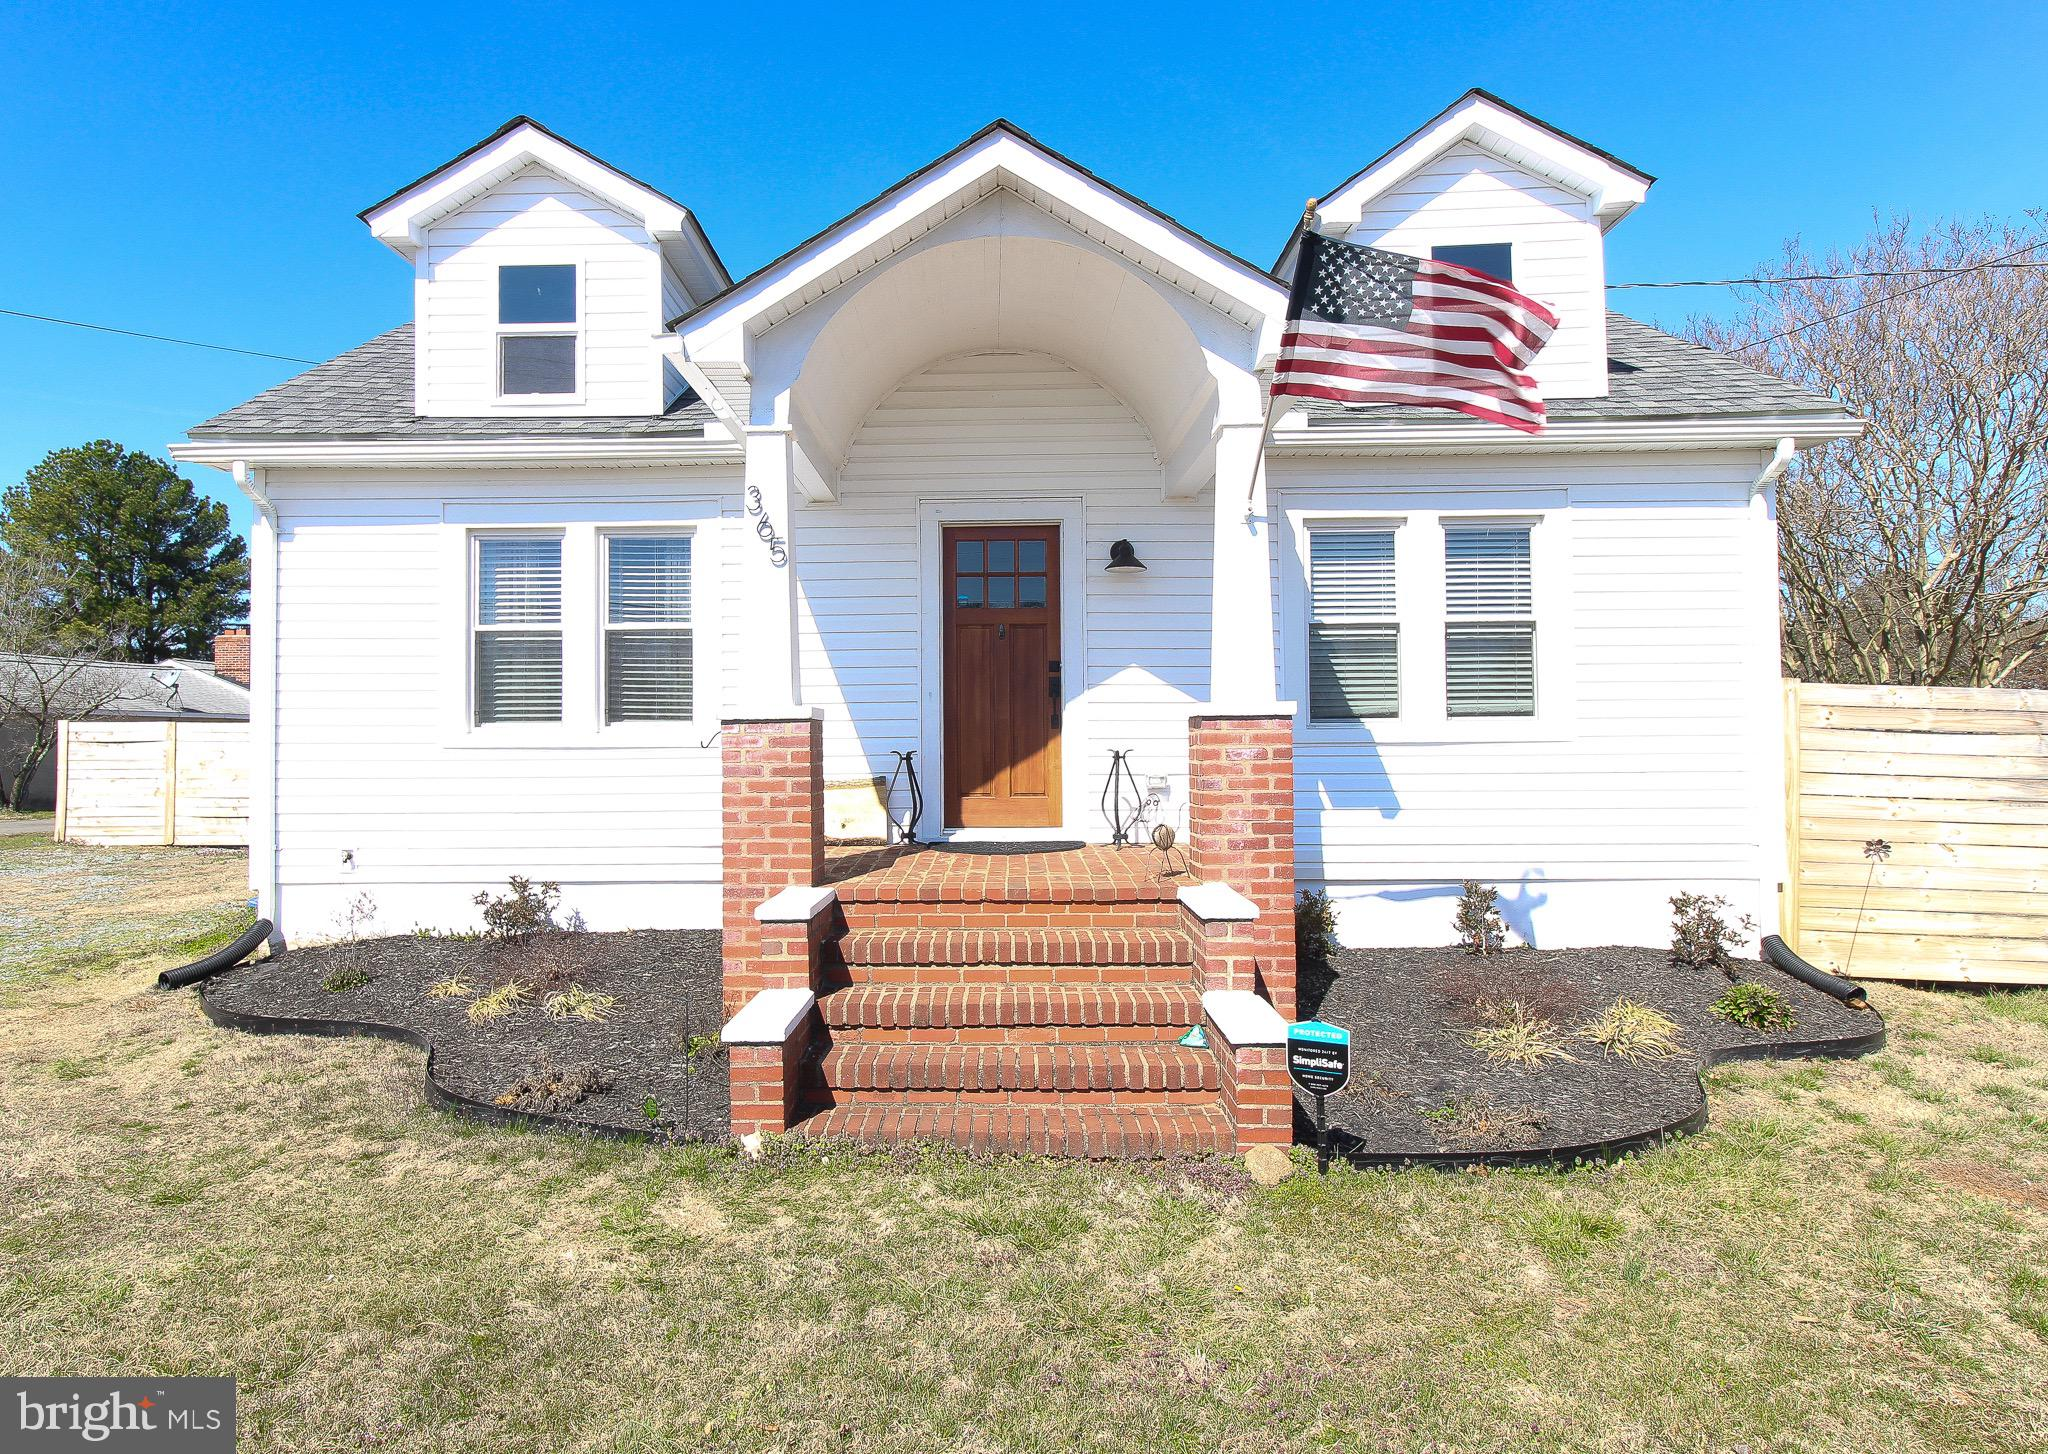 **ONLY ACCEPTING VIRTUAL SHOWINGS AT THIS TIME** This meticulously remodeled 120 year old Cape Cod j